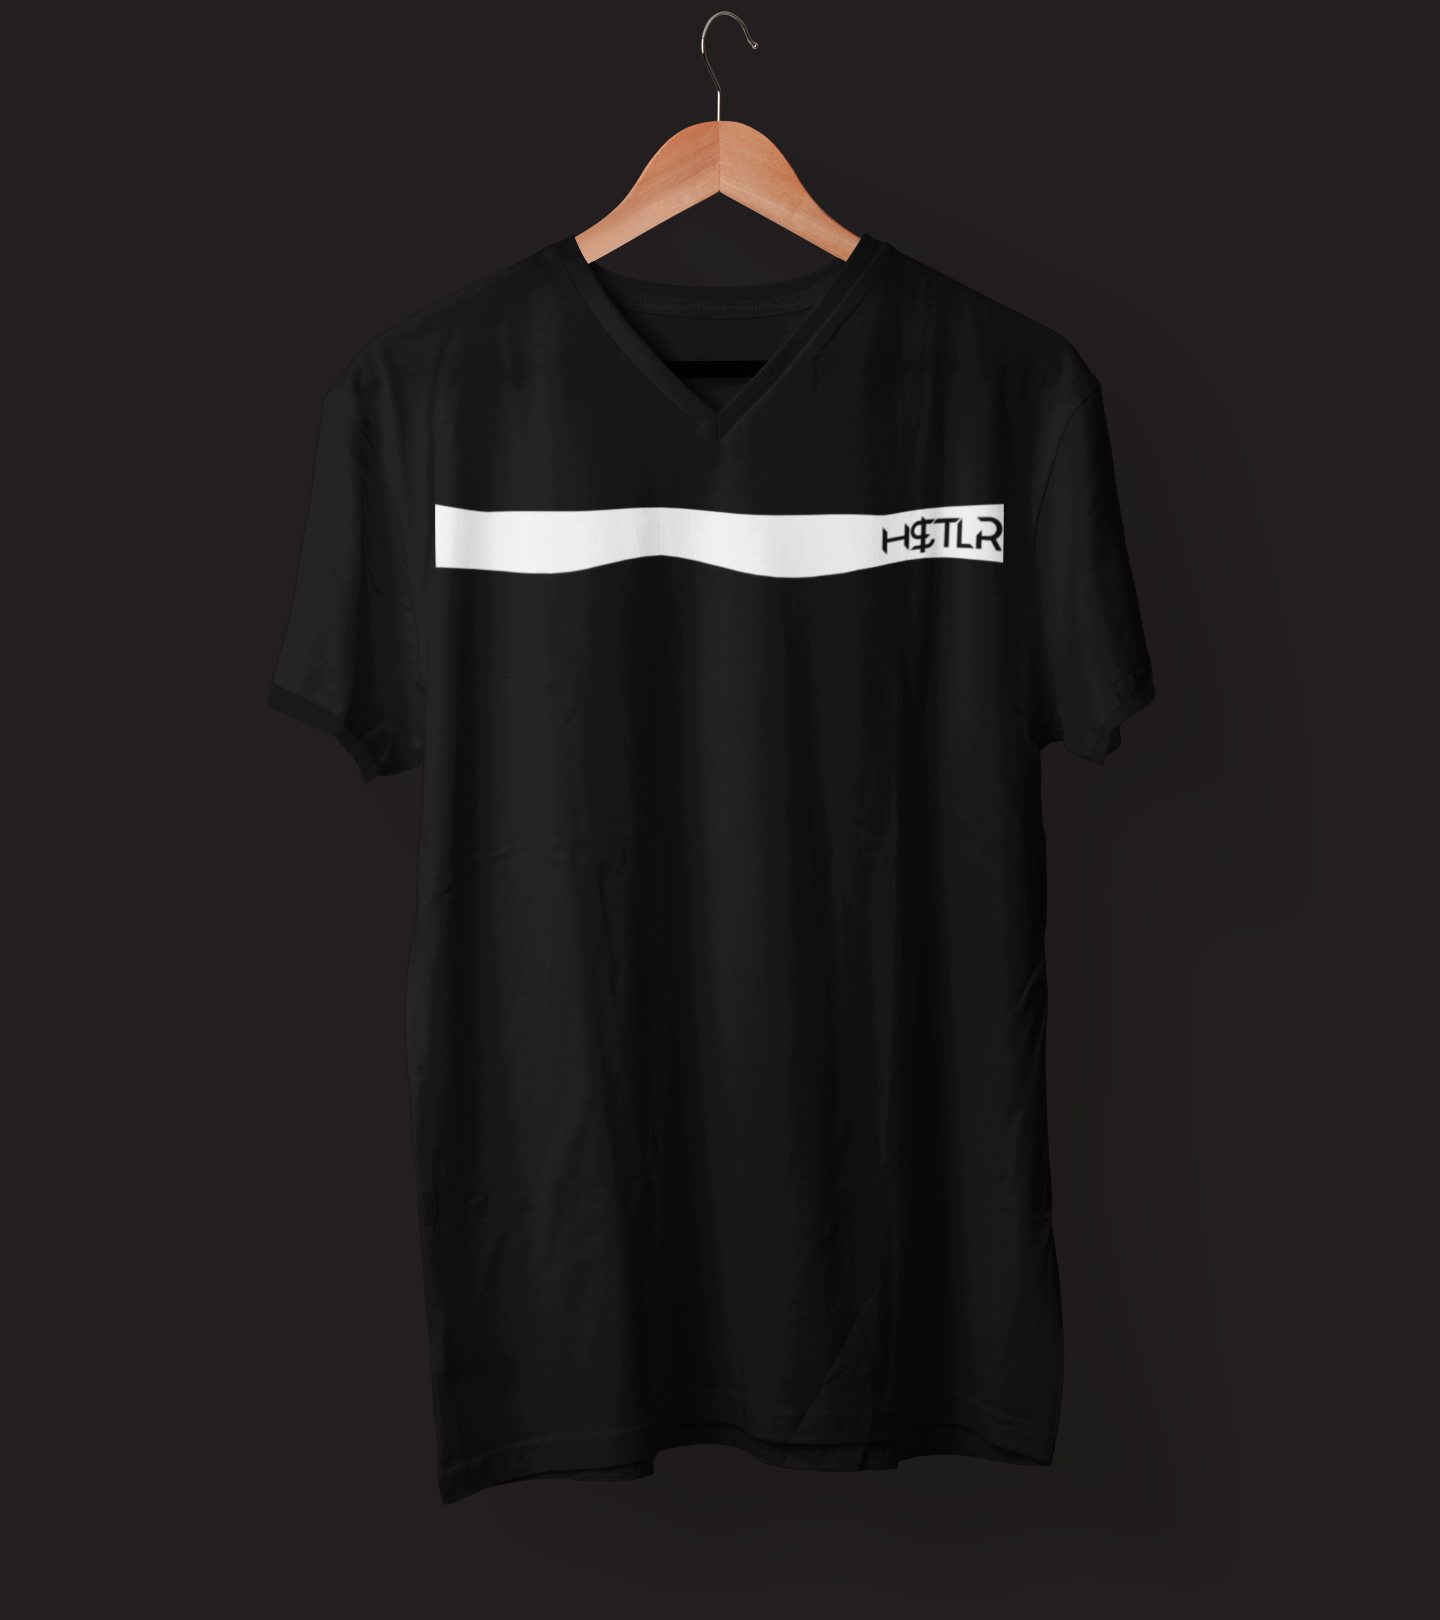 "Mens V-Neck T-Shirt ""H$TLR"" BlackS - Mperior: The Store For Entrepreneurs, Hustlers and Achievers"